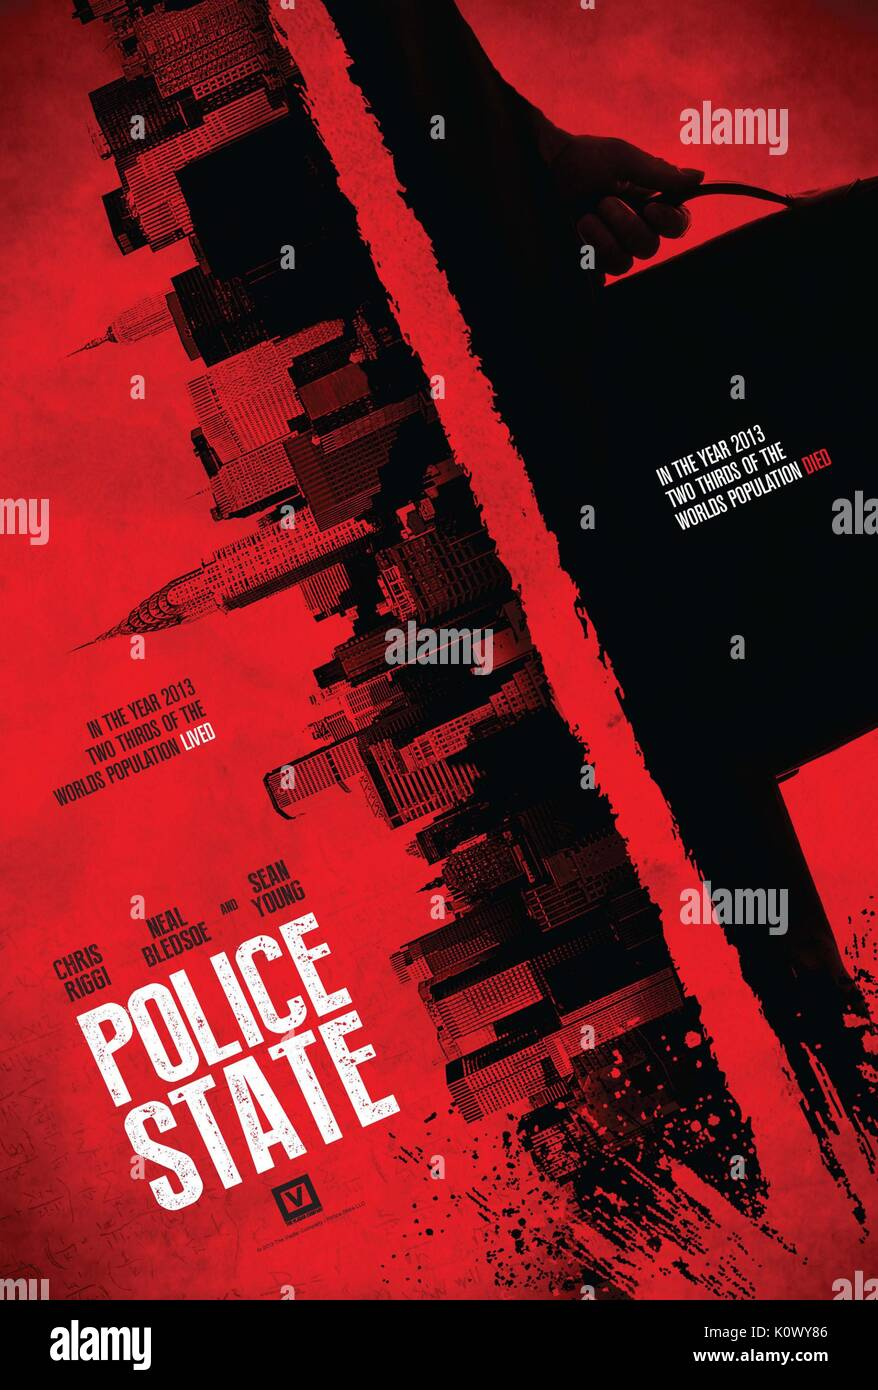 MOVIE POSTER POLICE STATE (2015) - Stock Image